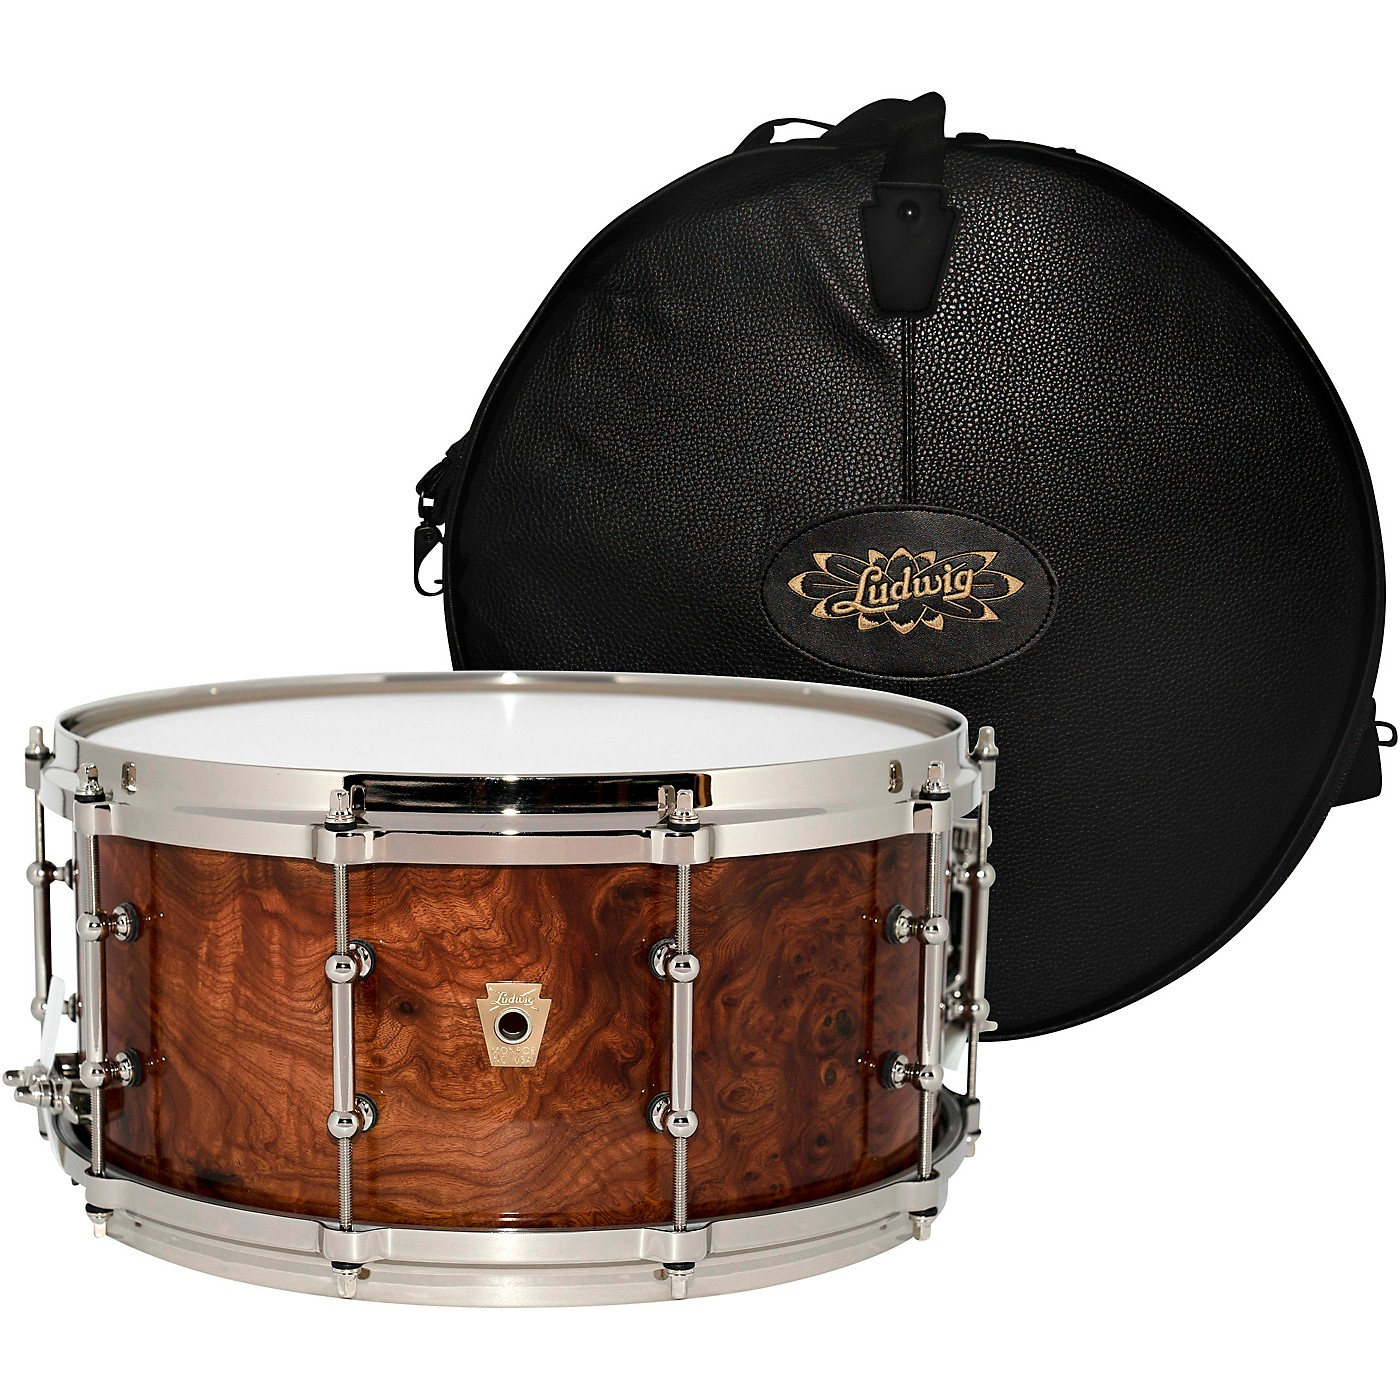 Ludwig Aged Exotic Carpathian Elm Limited Edition Snare Drum with Bag, 14 x 6.5 in. thumbnail